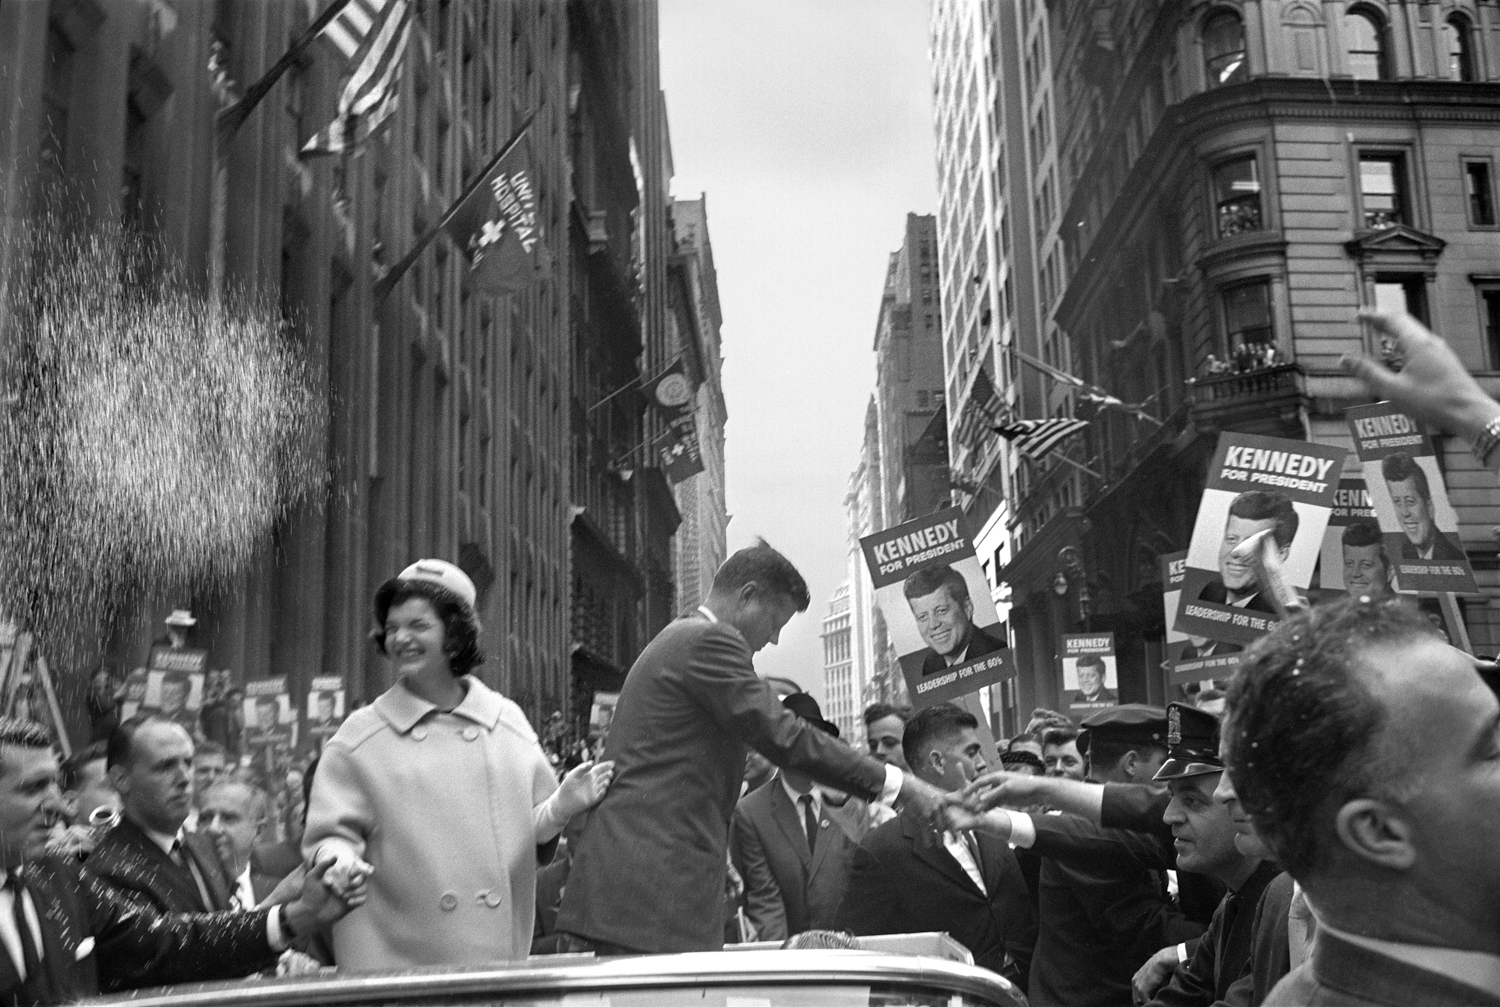 John F. Kennedy and his wife, Jackie, campaigning in New York, Oct. 19, 1960.